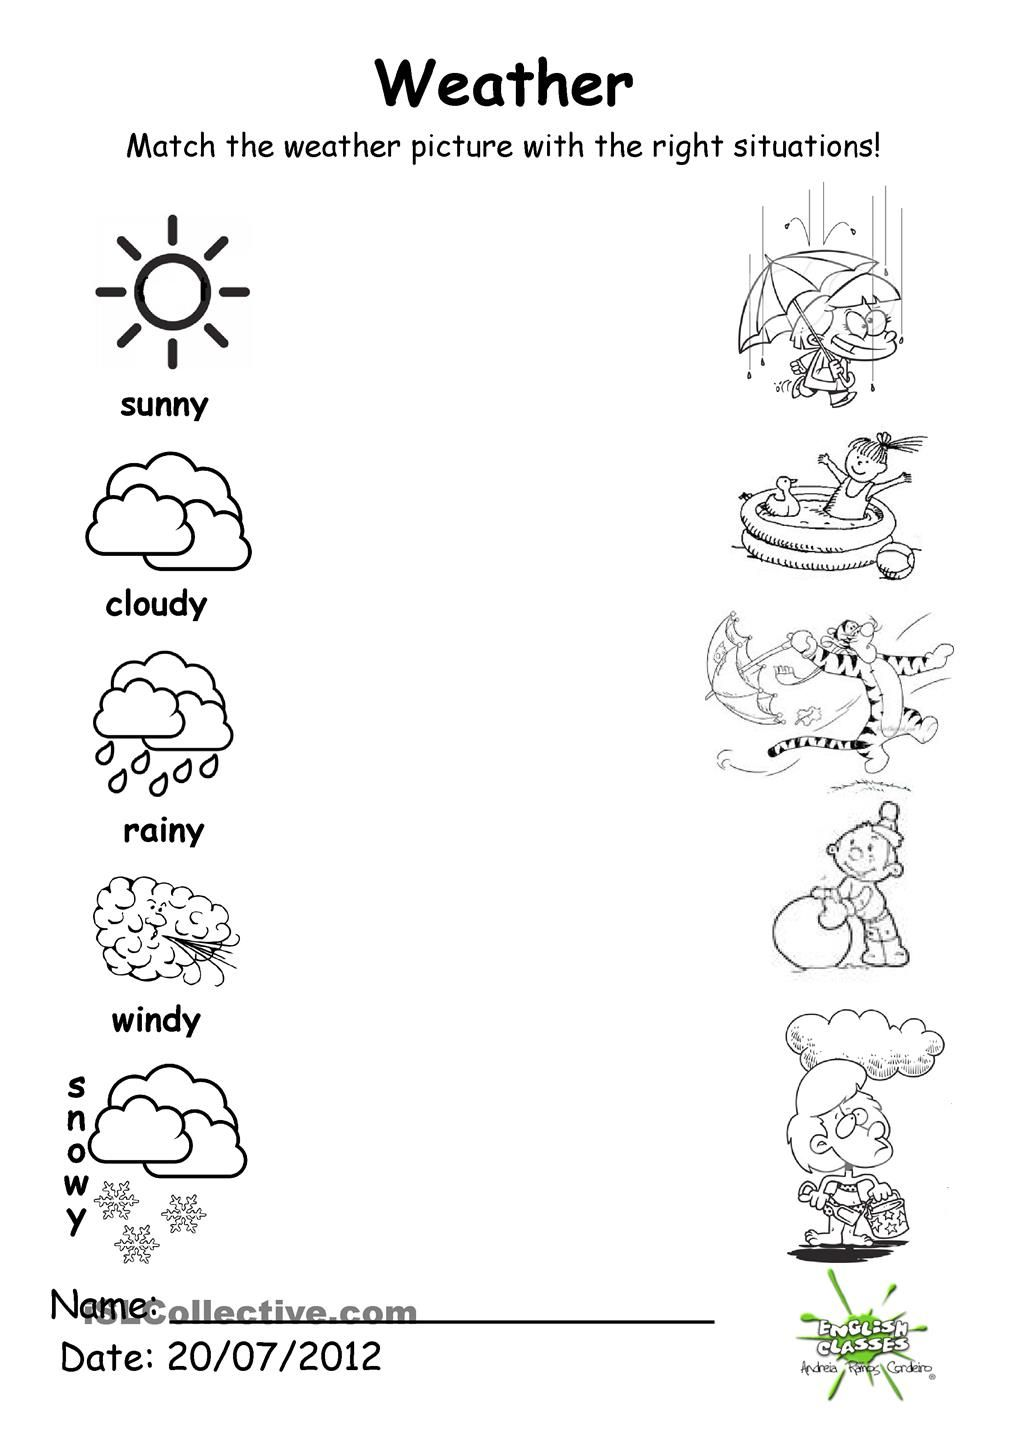 weather match weather theme pinterest weather worksheets and printable worksheets. Black Bedroom Furniture Sets. Home Design Ideas